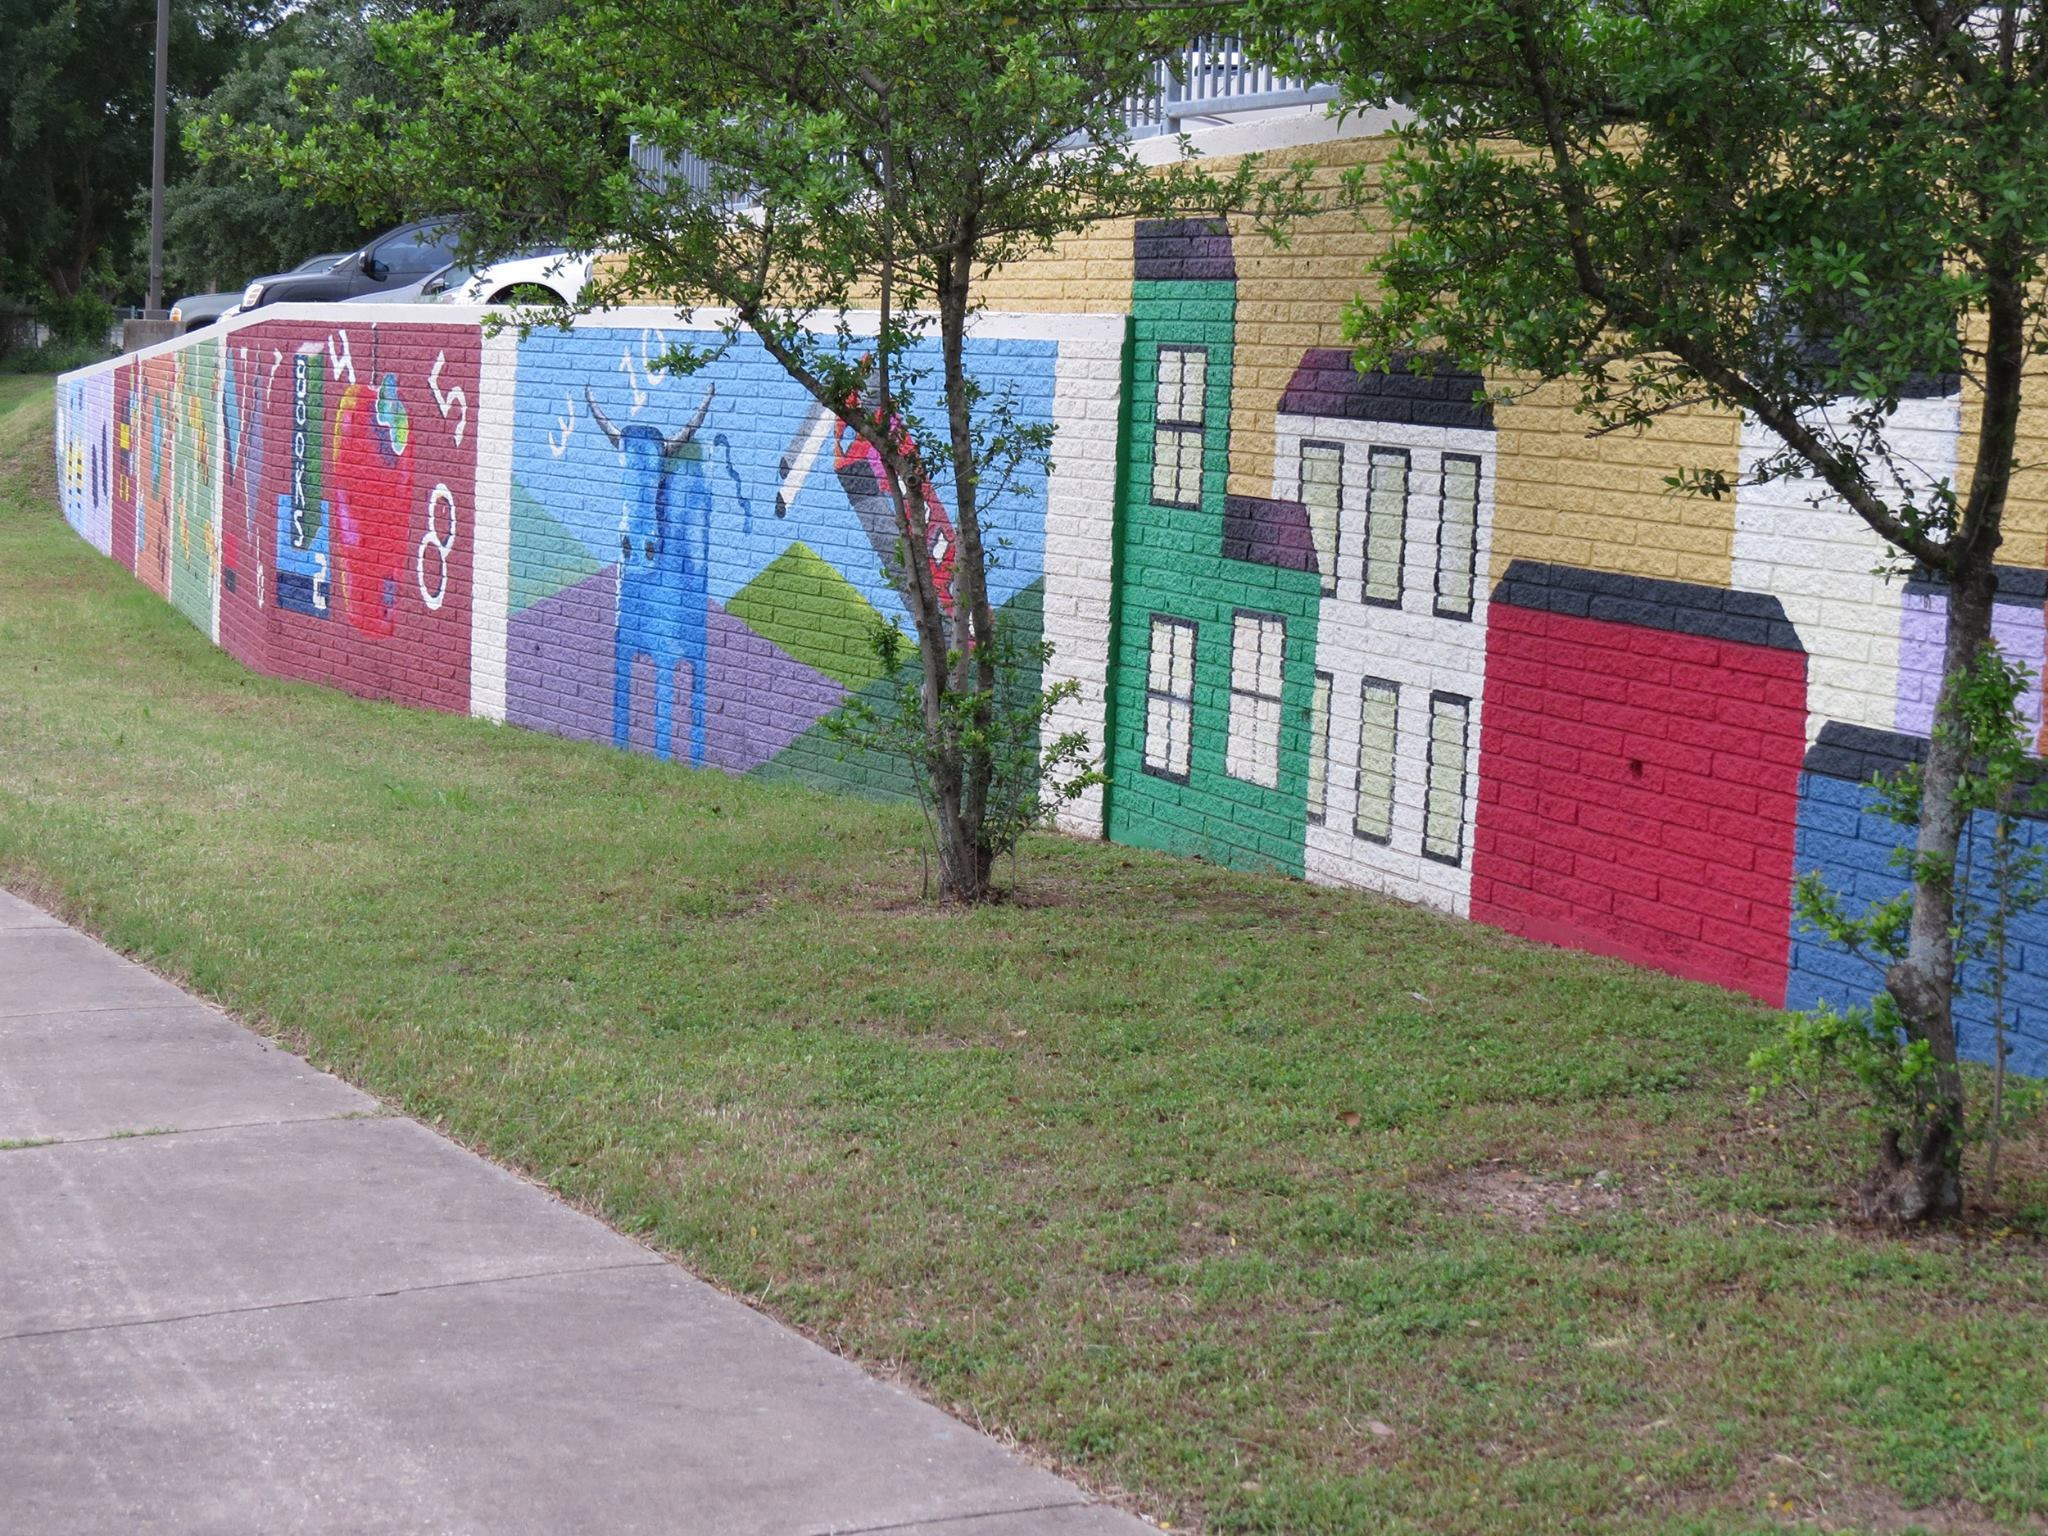 Parking lot retaining wall with painted panels depicting city and other scenes